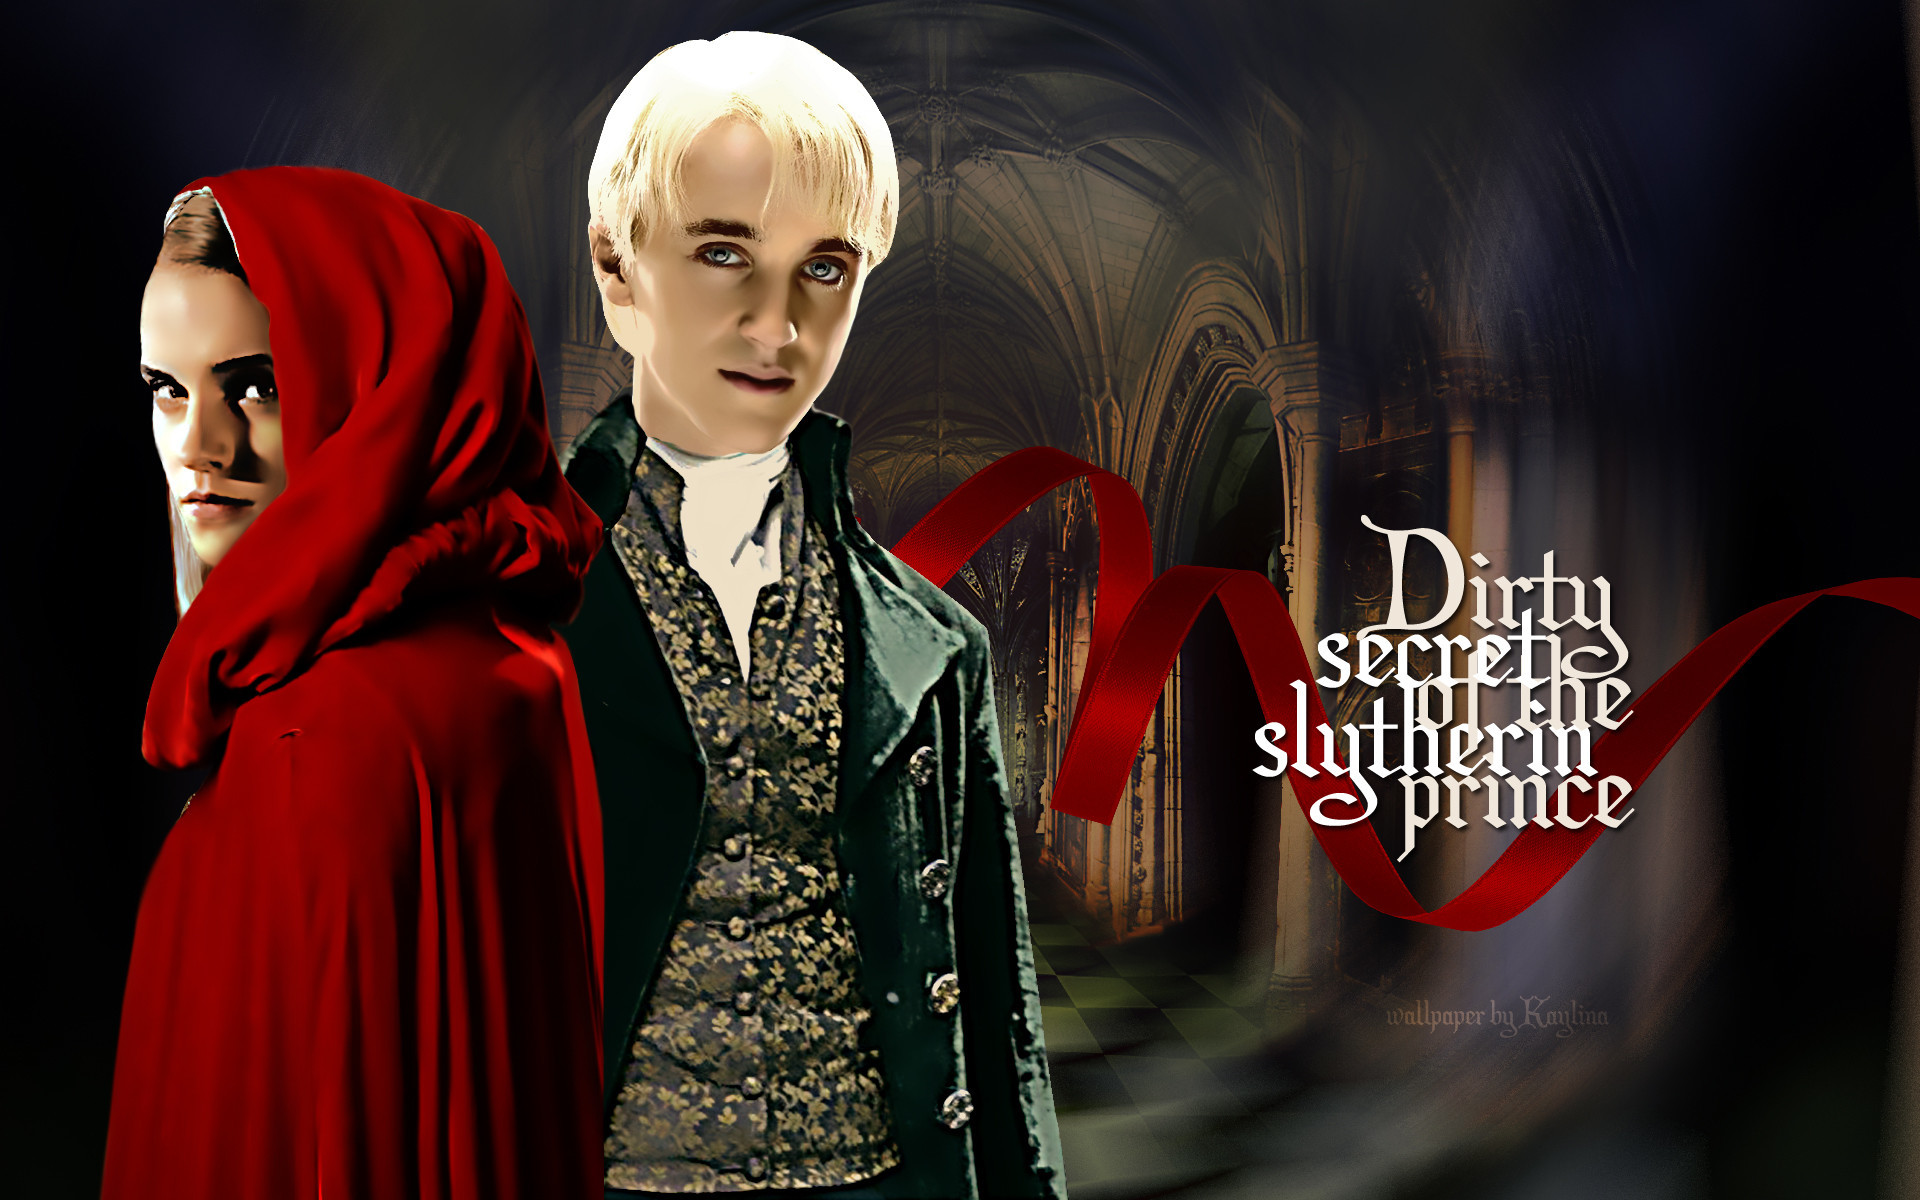 1920x1200 1242x1921 Harry Potter Archives - Our World is Amazing. Slytherin.